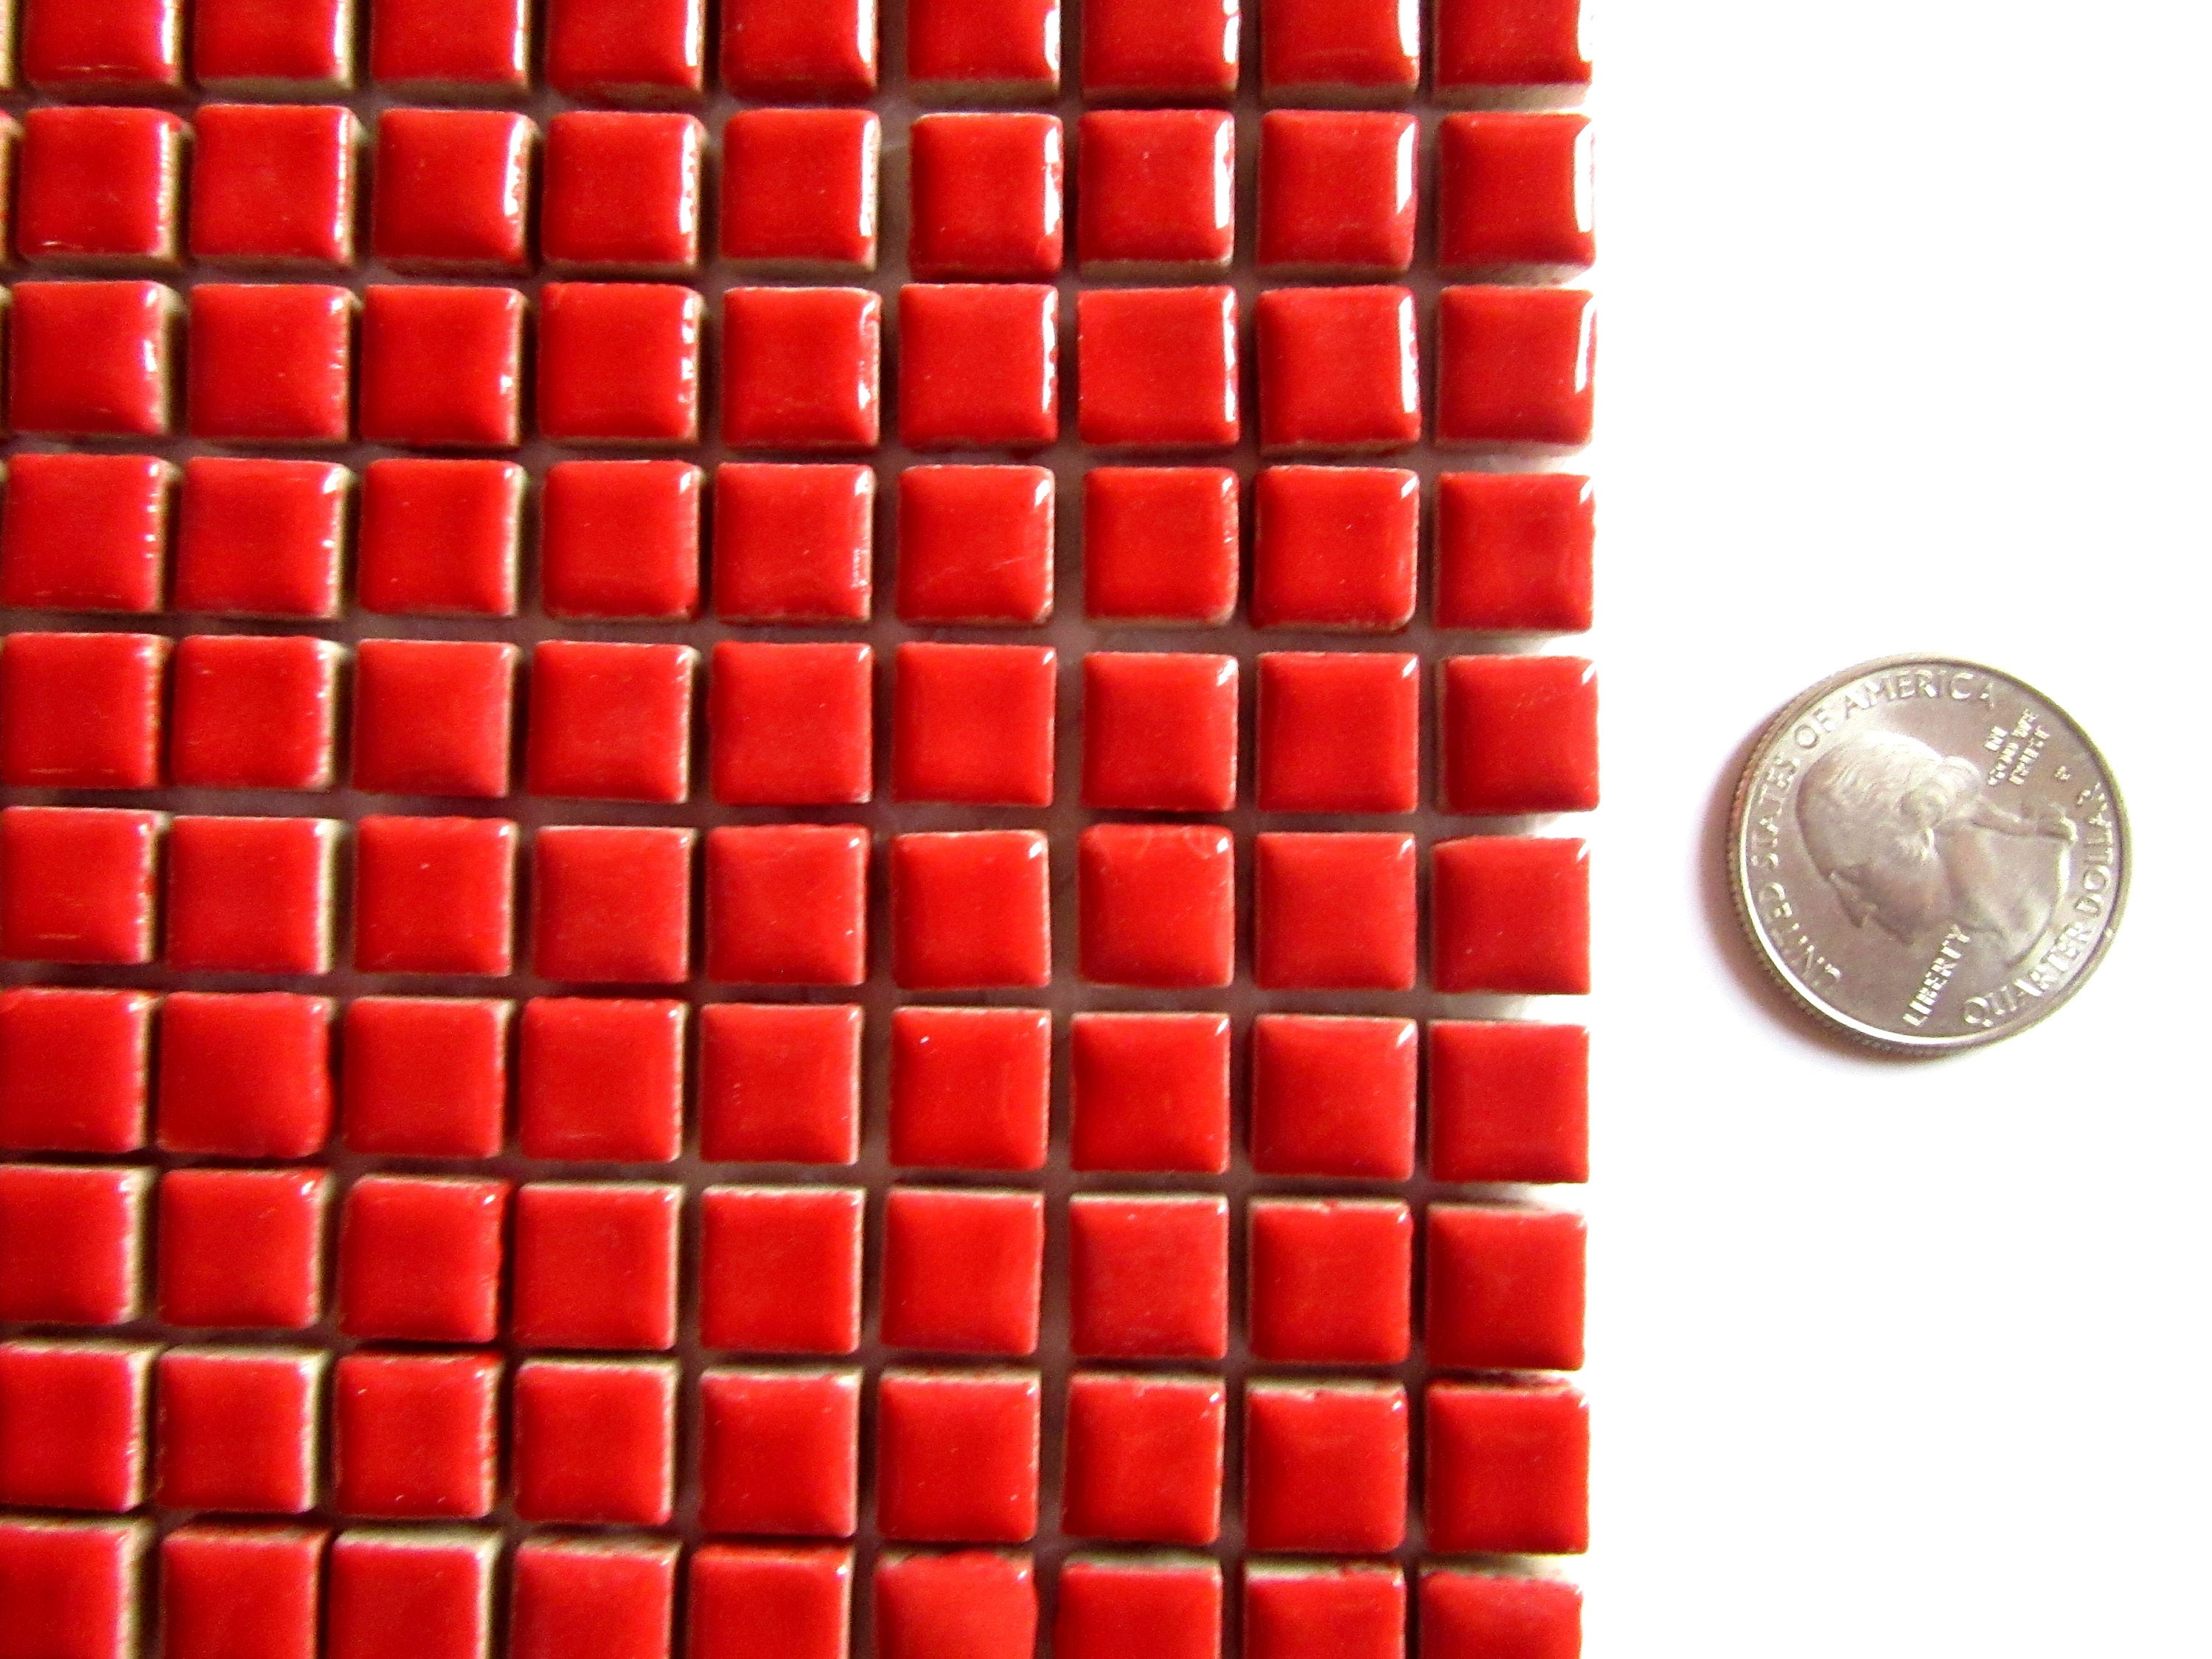 100 Small Red Tiles Mini Red Mosaic Tiles Tiny Red Tiles Small